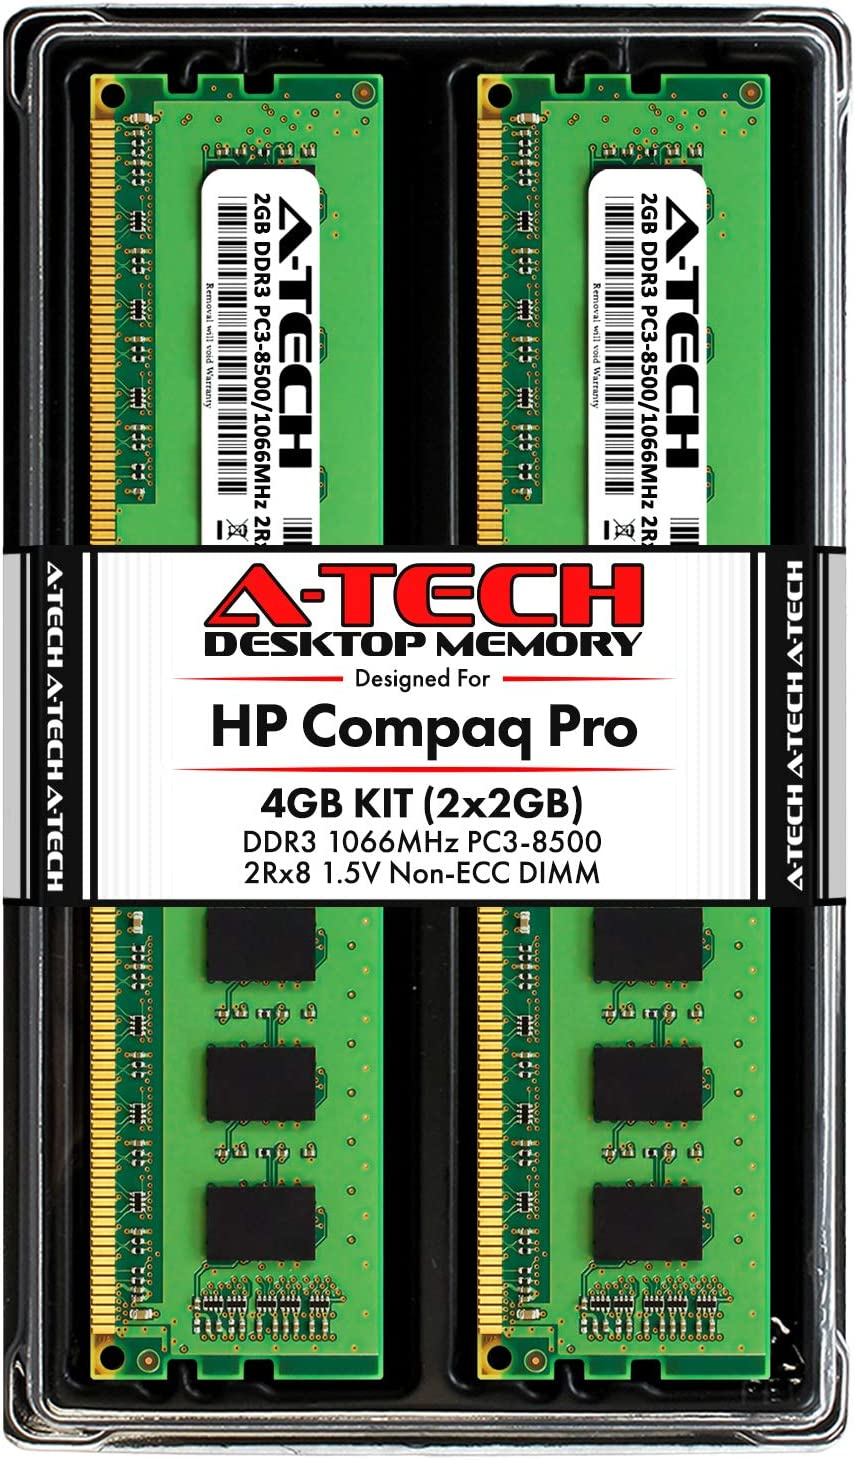 A-Tech 4GB (2 x 2GB) RAM for HP Compaq 4000 Pro & 6000 Pro - (Small Form Factor & Microtower) - DDR3 1066MHz PC3-8500 Non-ECC DIMM Memory Upgrade Kit